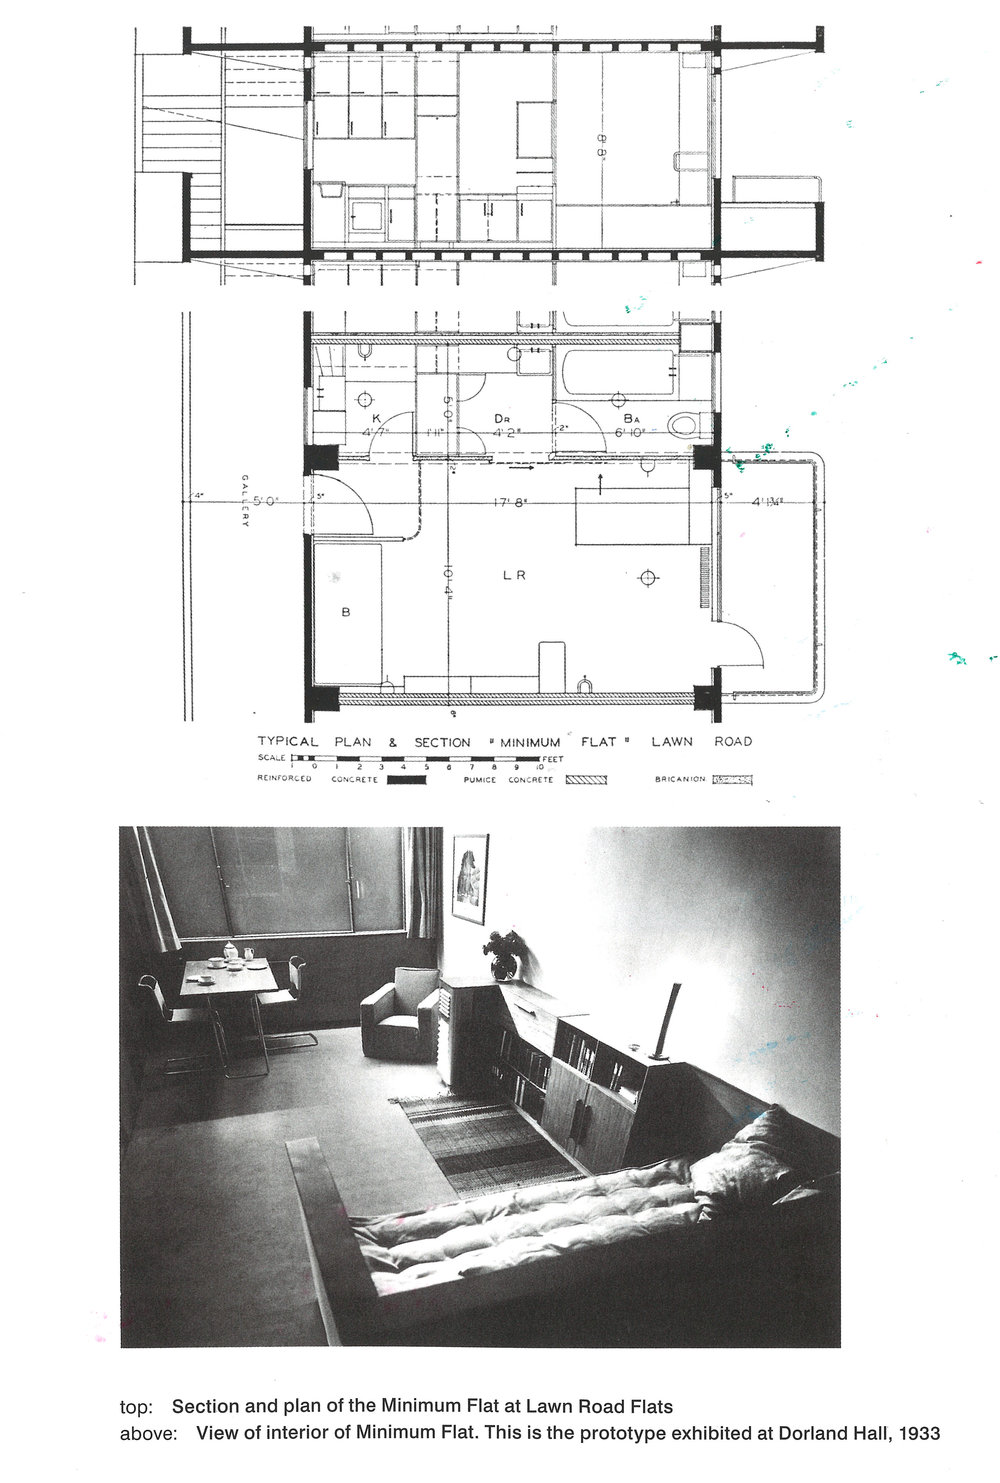 Original Isokon drawings and photograph. (From The Isokon Gallery book)